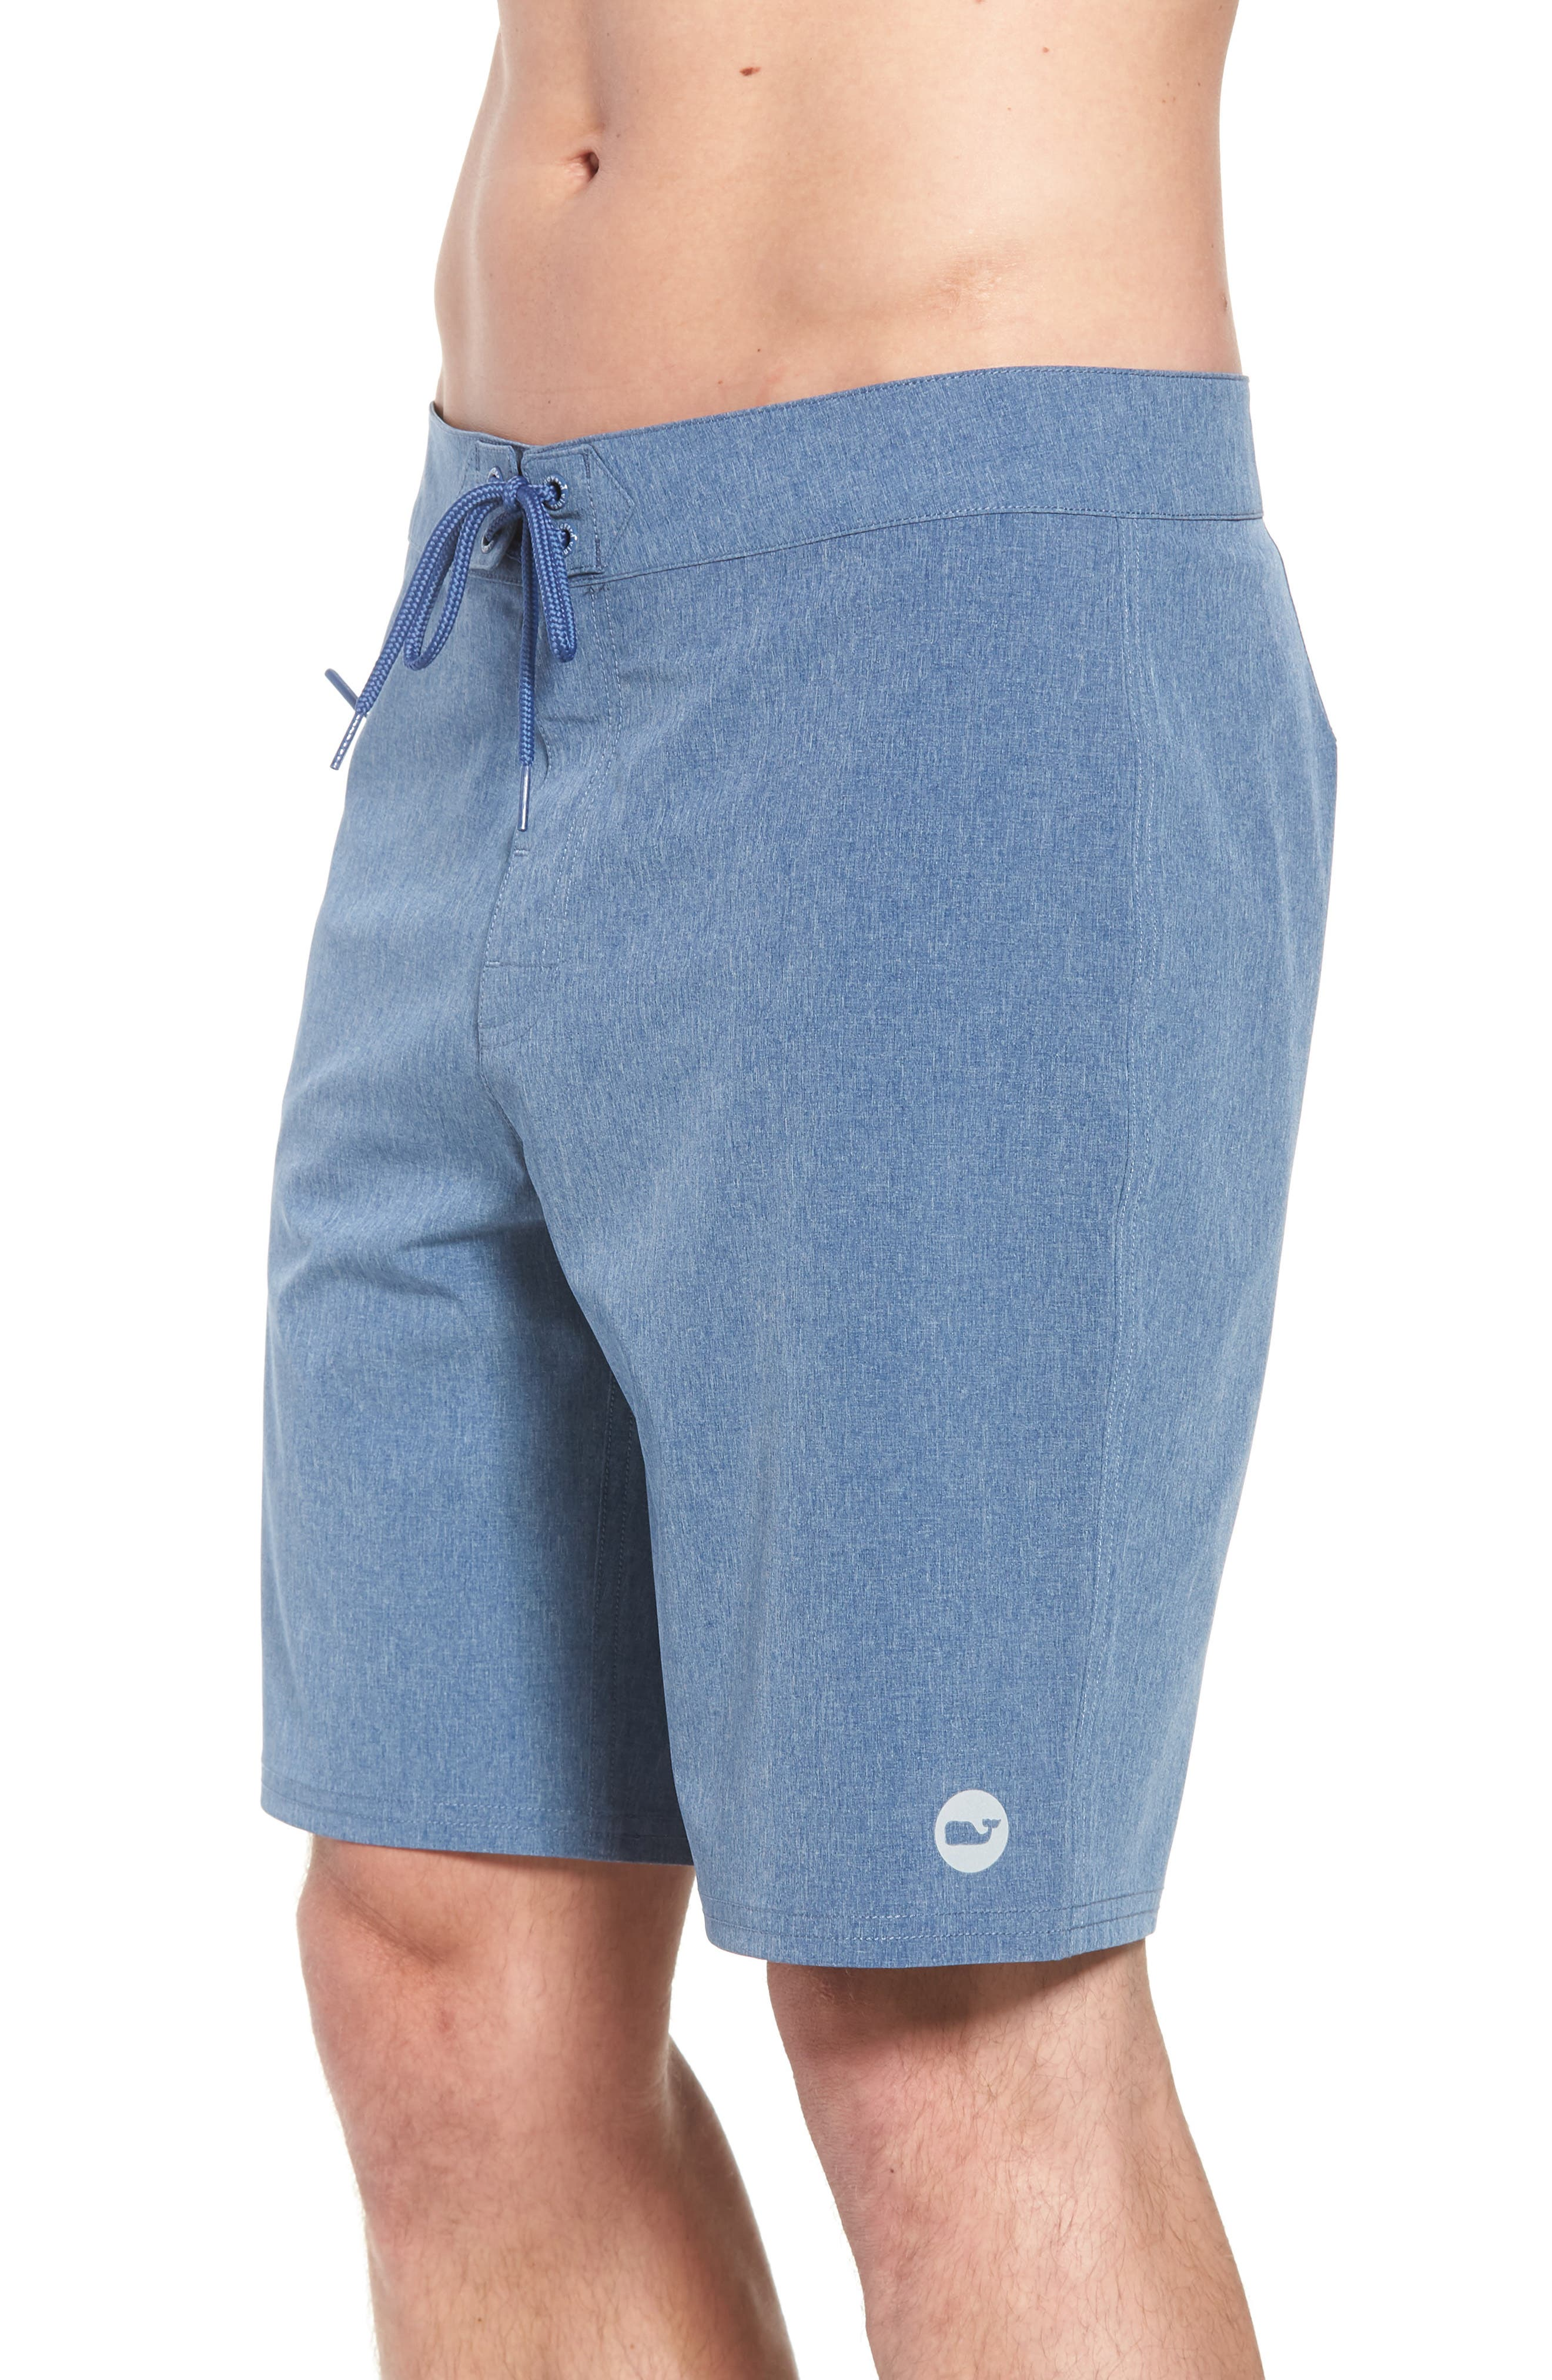 Heather Stretch Board Shorts,                             Alternate thumbnail 3, color,                             461